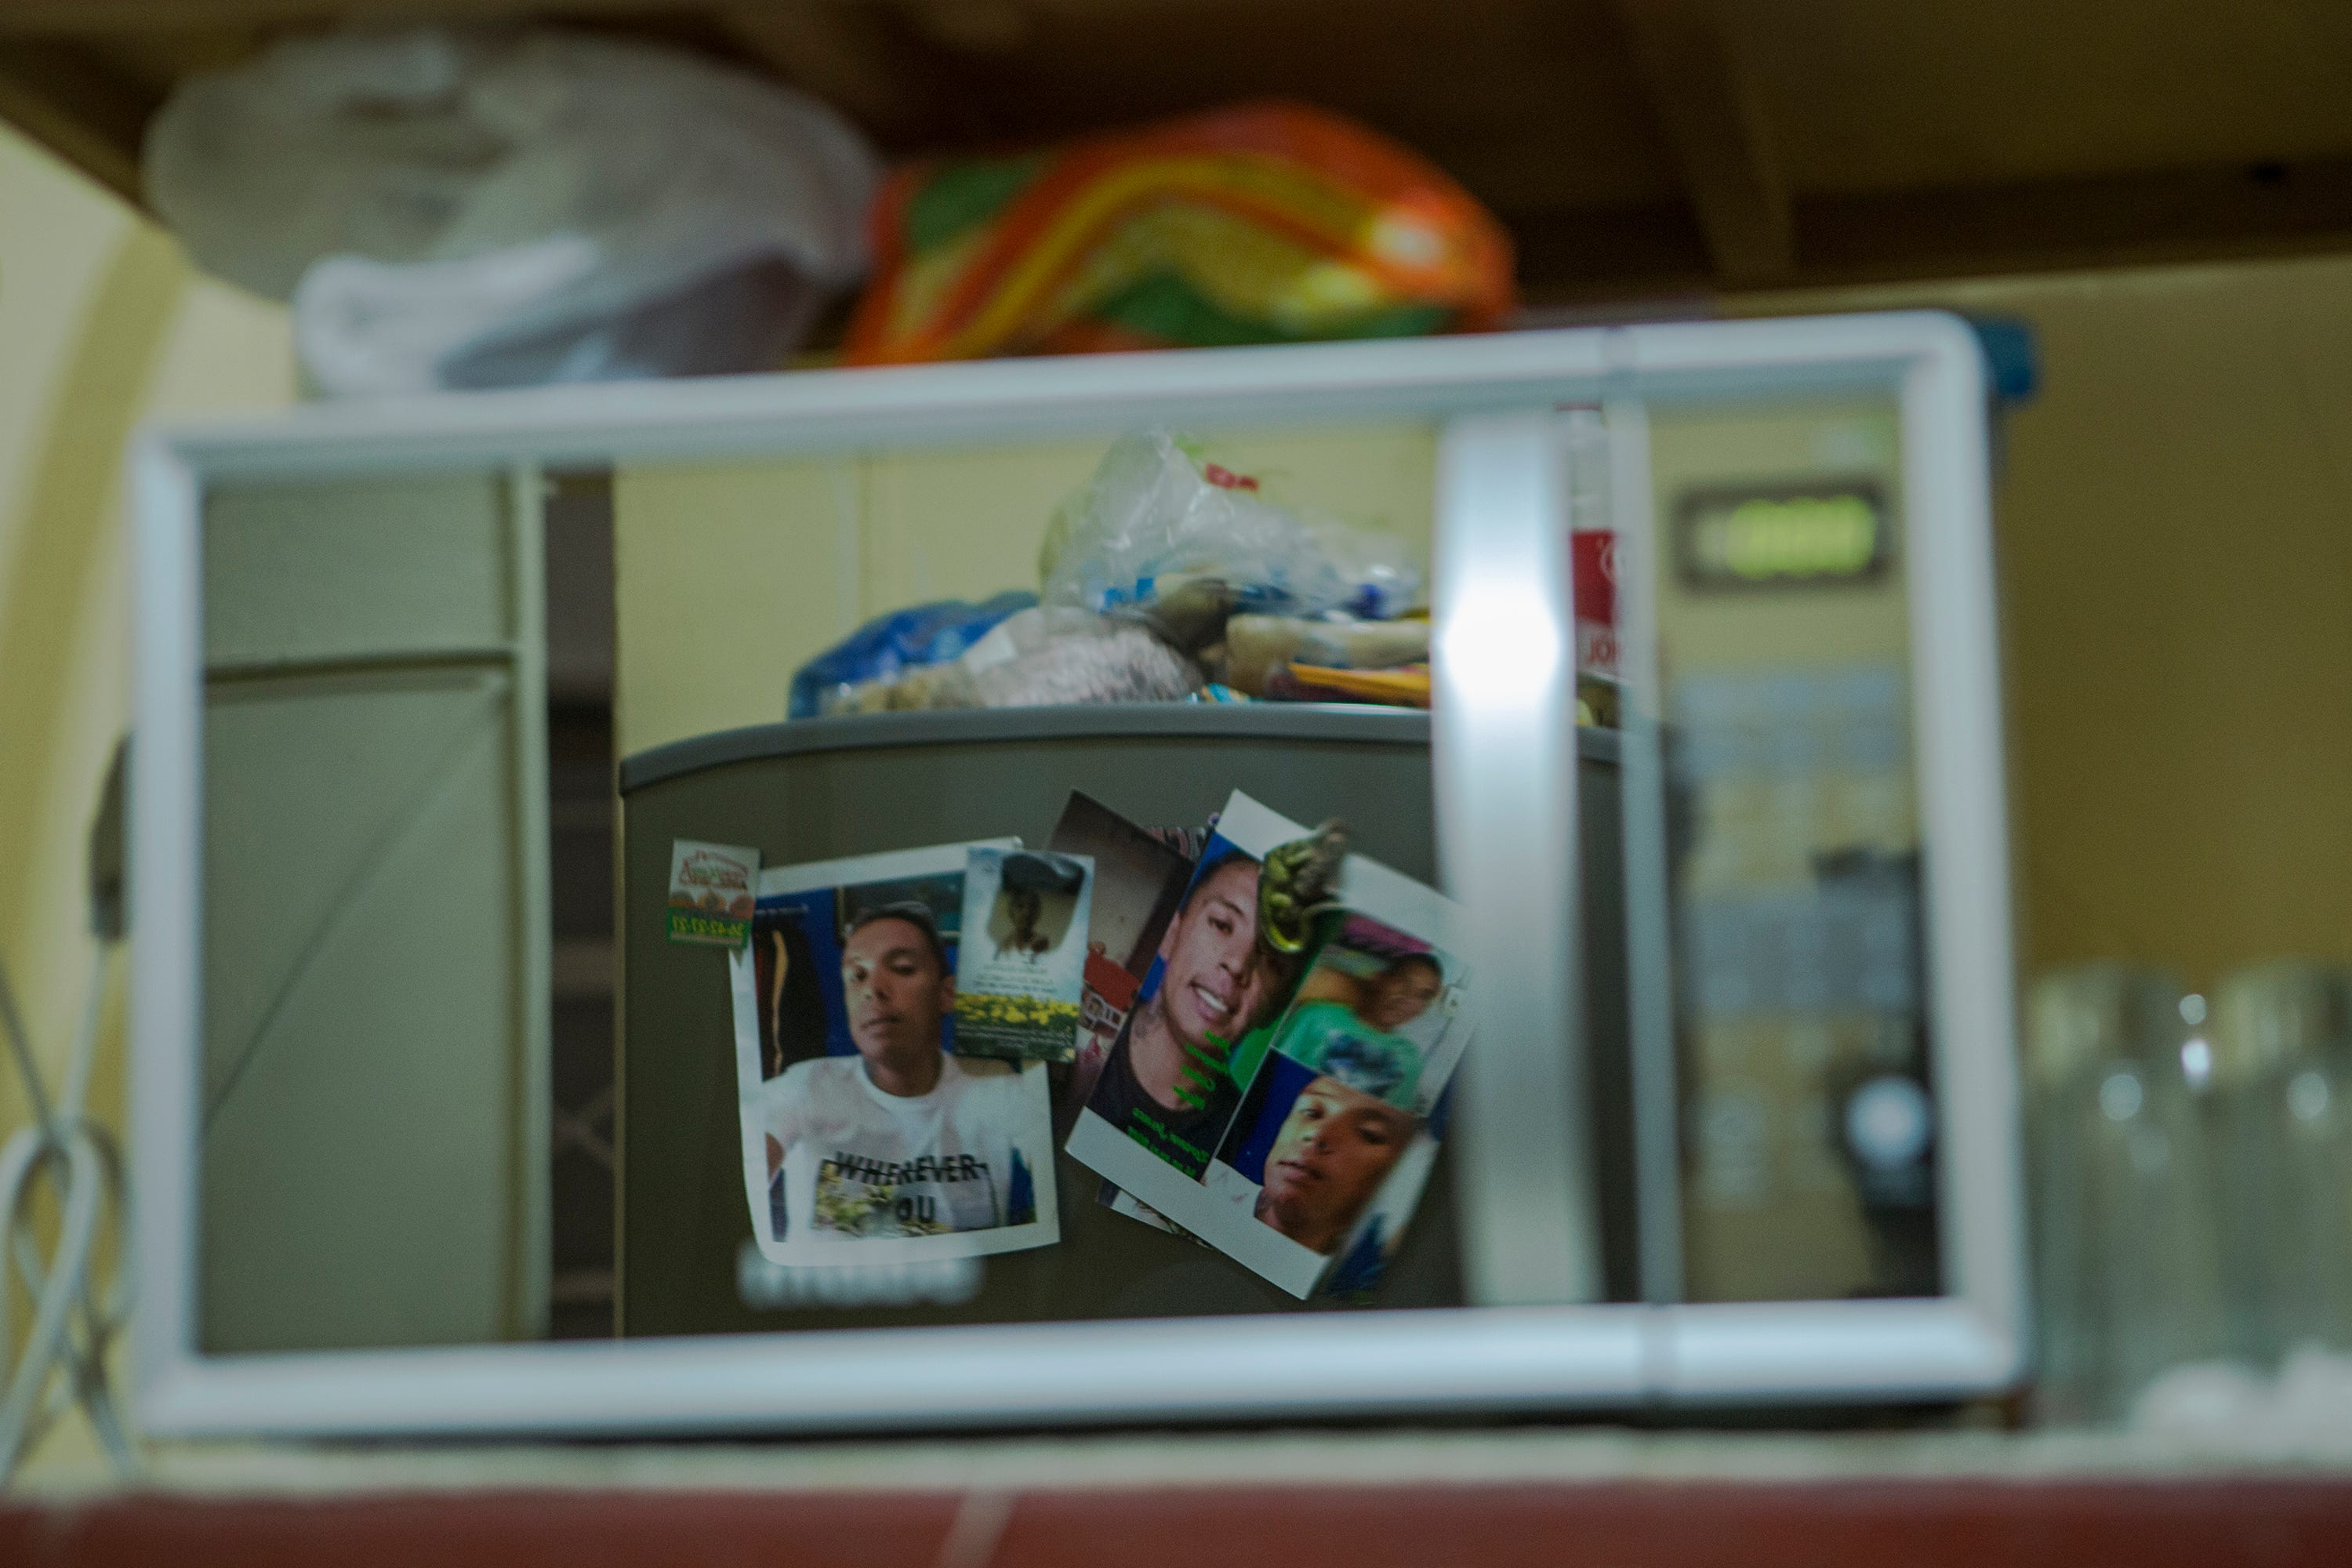 Photographs of Jorge Abraham Chávez Morán, who disappeared on July 19, 2017, in Zapopan, Jalisco, are reflected in his mother's microwave.